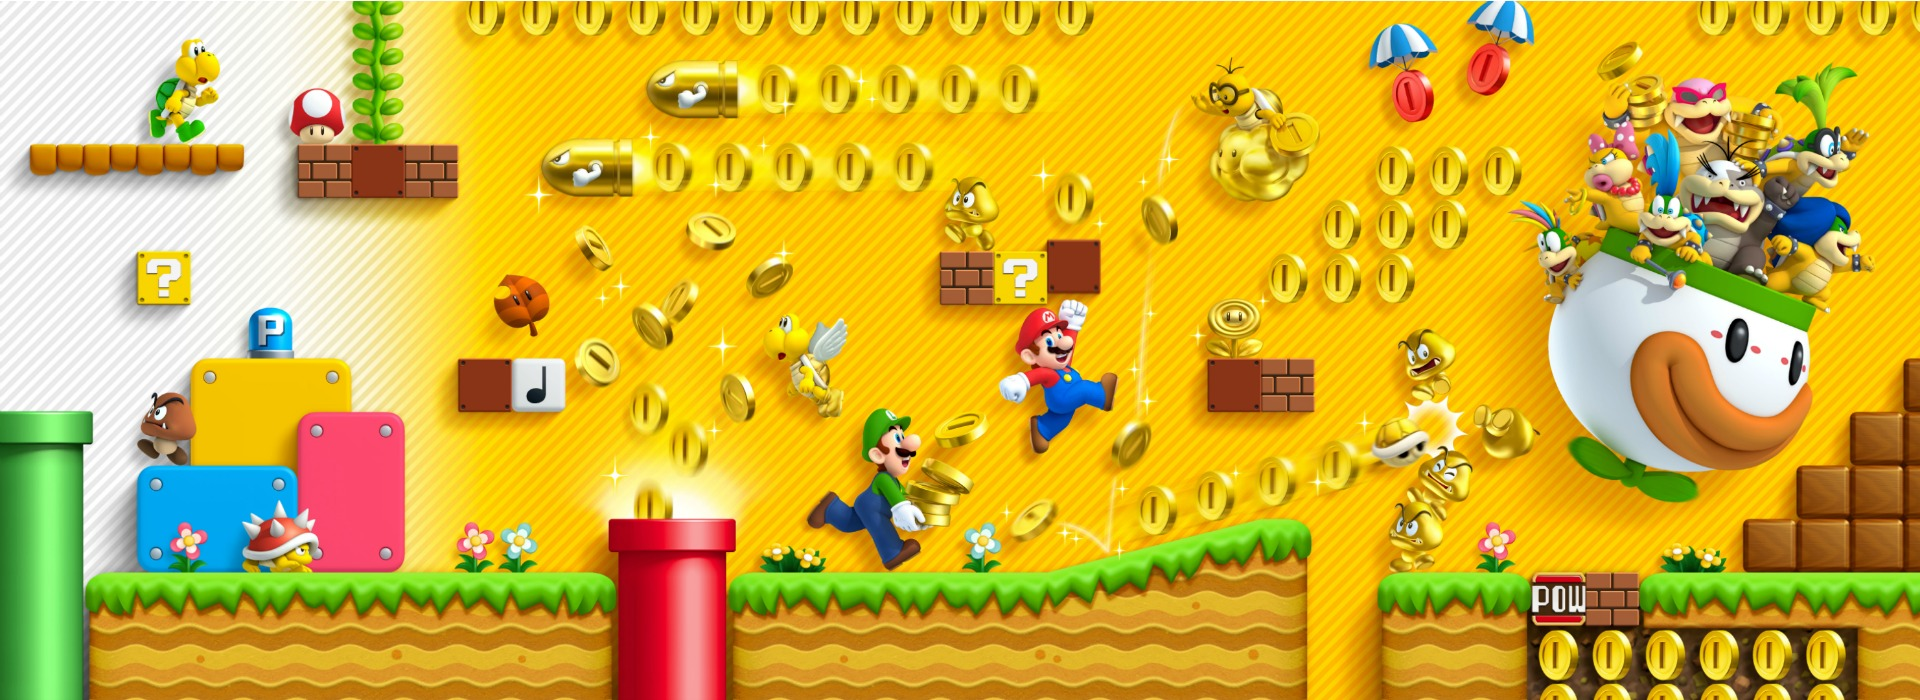 new-super-mario-bros-2-banner